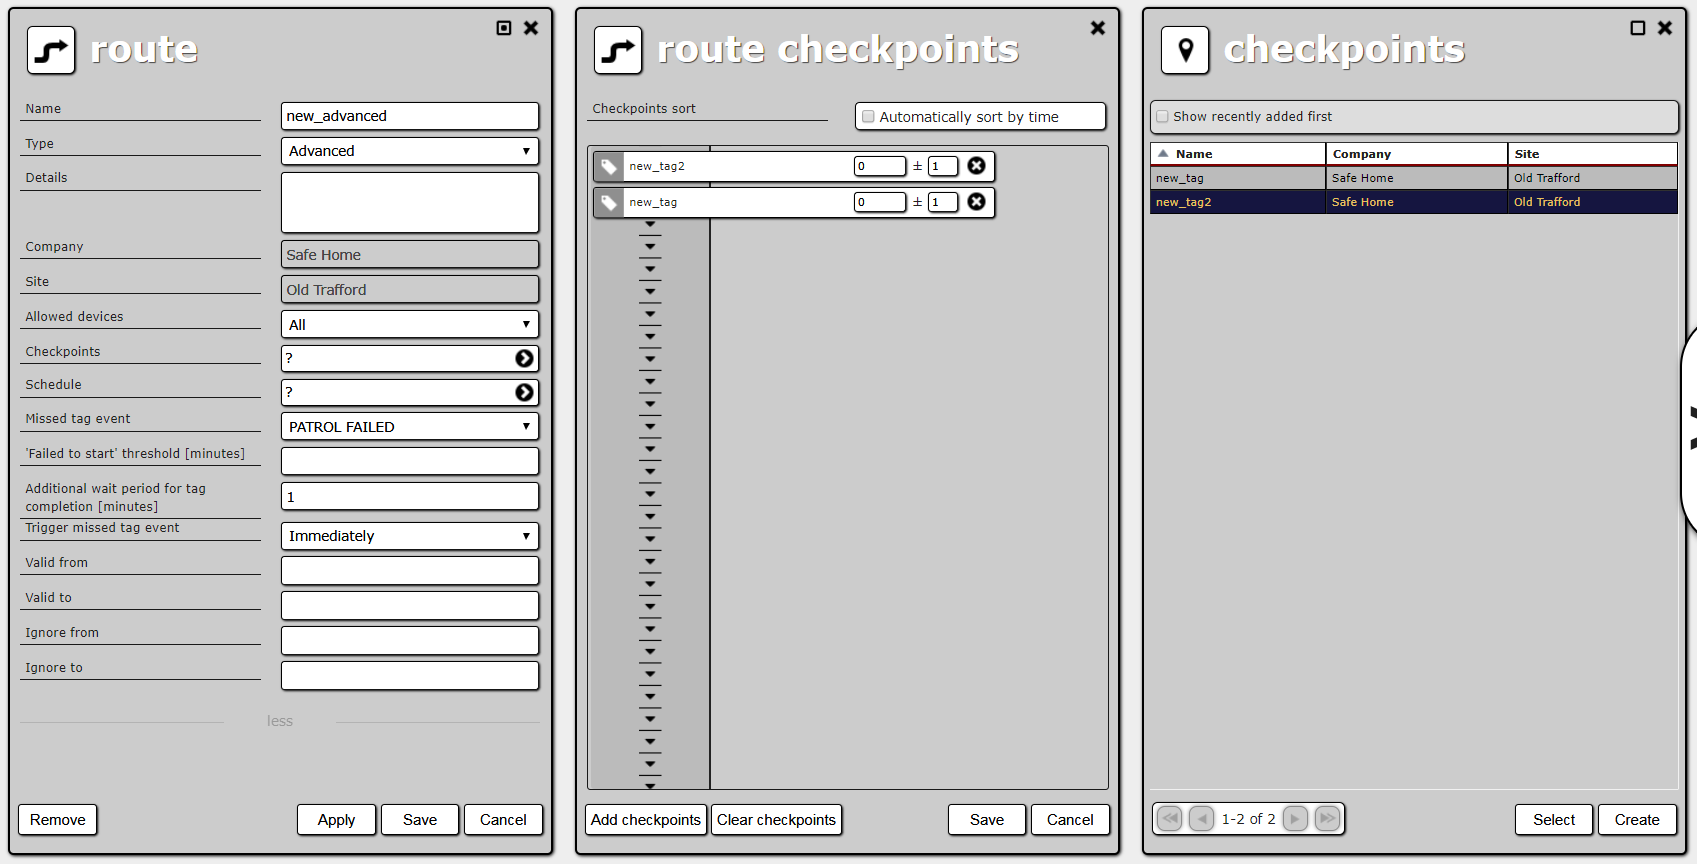 Advanced route details, route checkpoint list and site checkpoint list